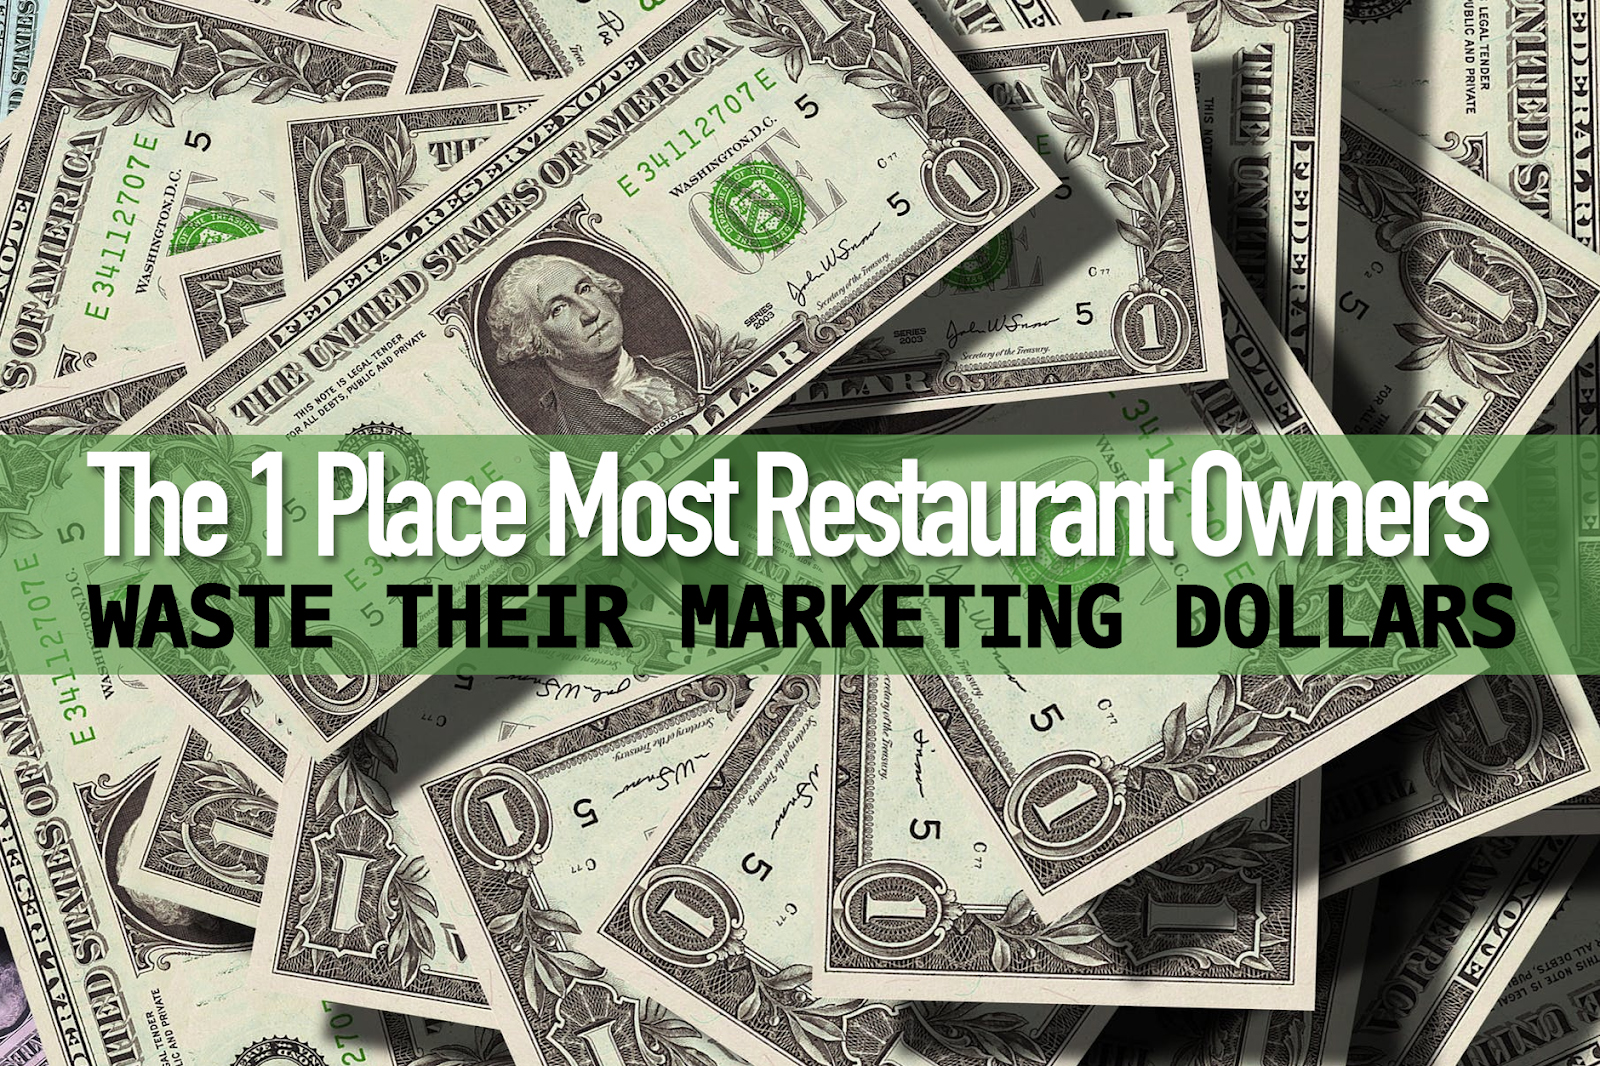 The #1 Place Most  Restaurant Owners Waste their Marketing Dollars